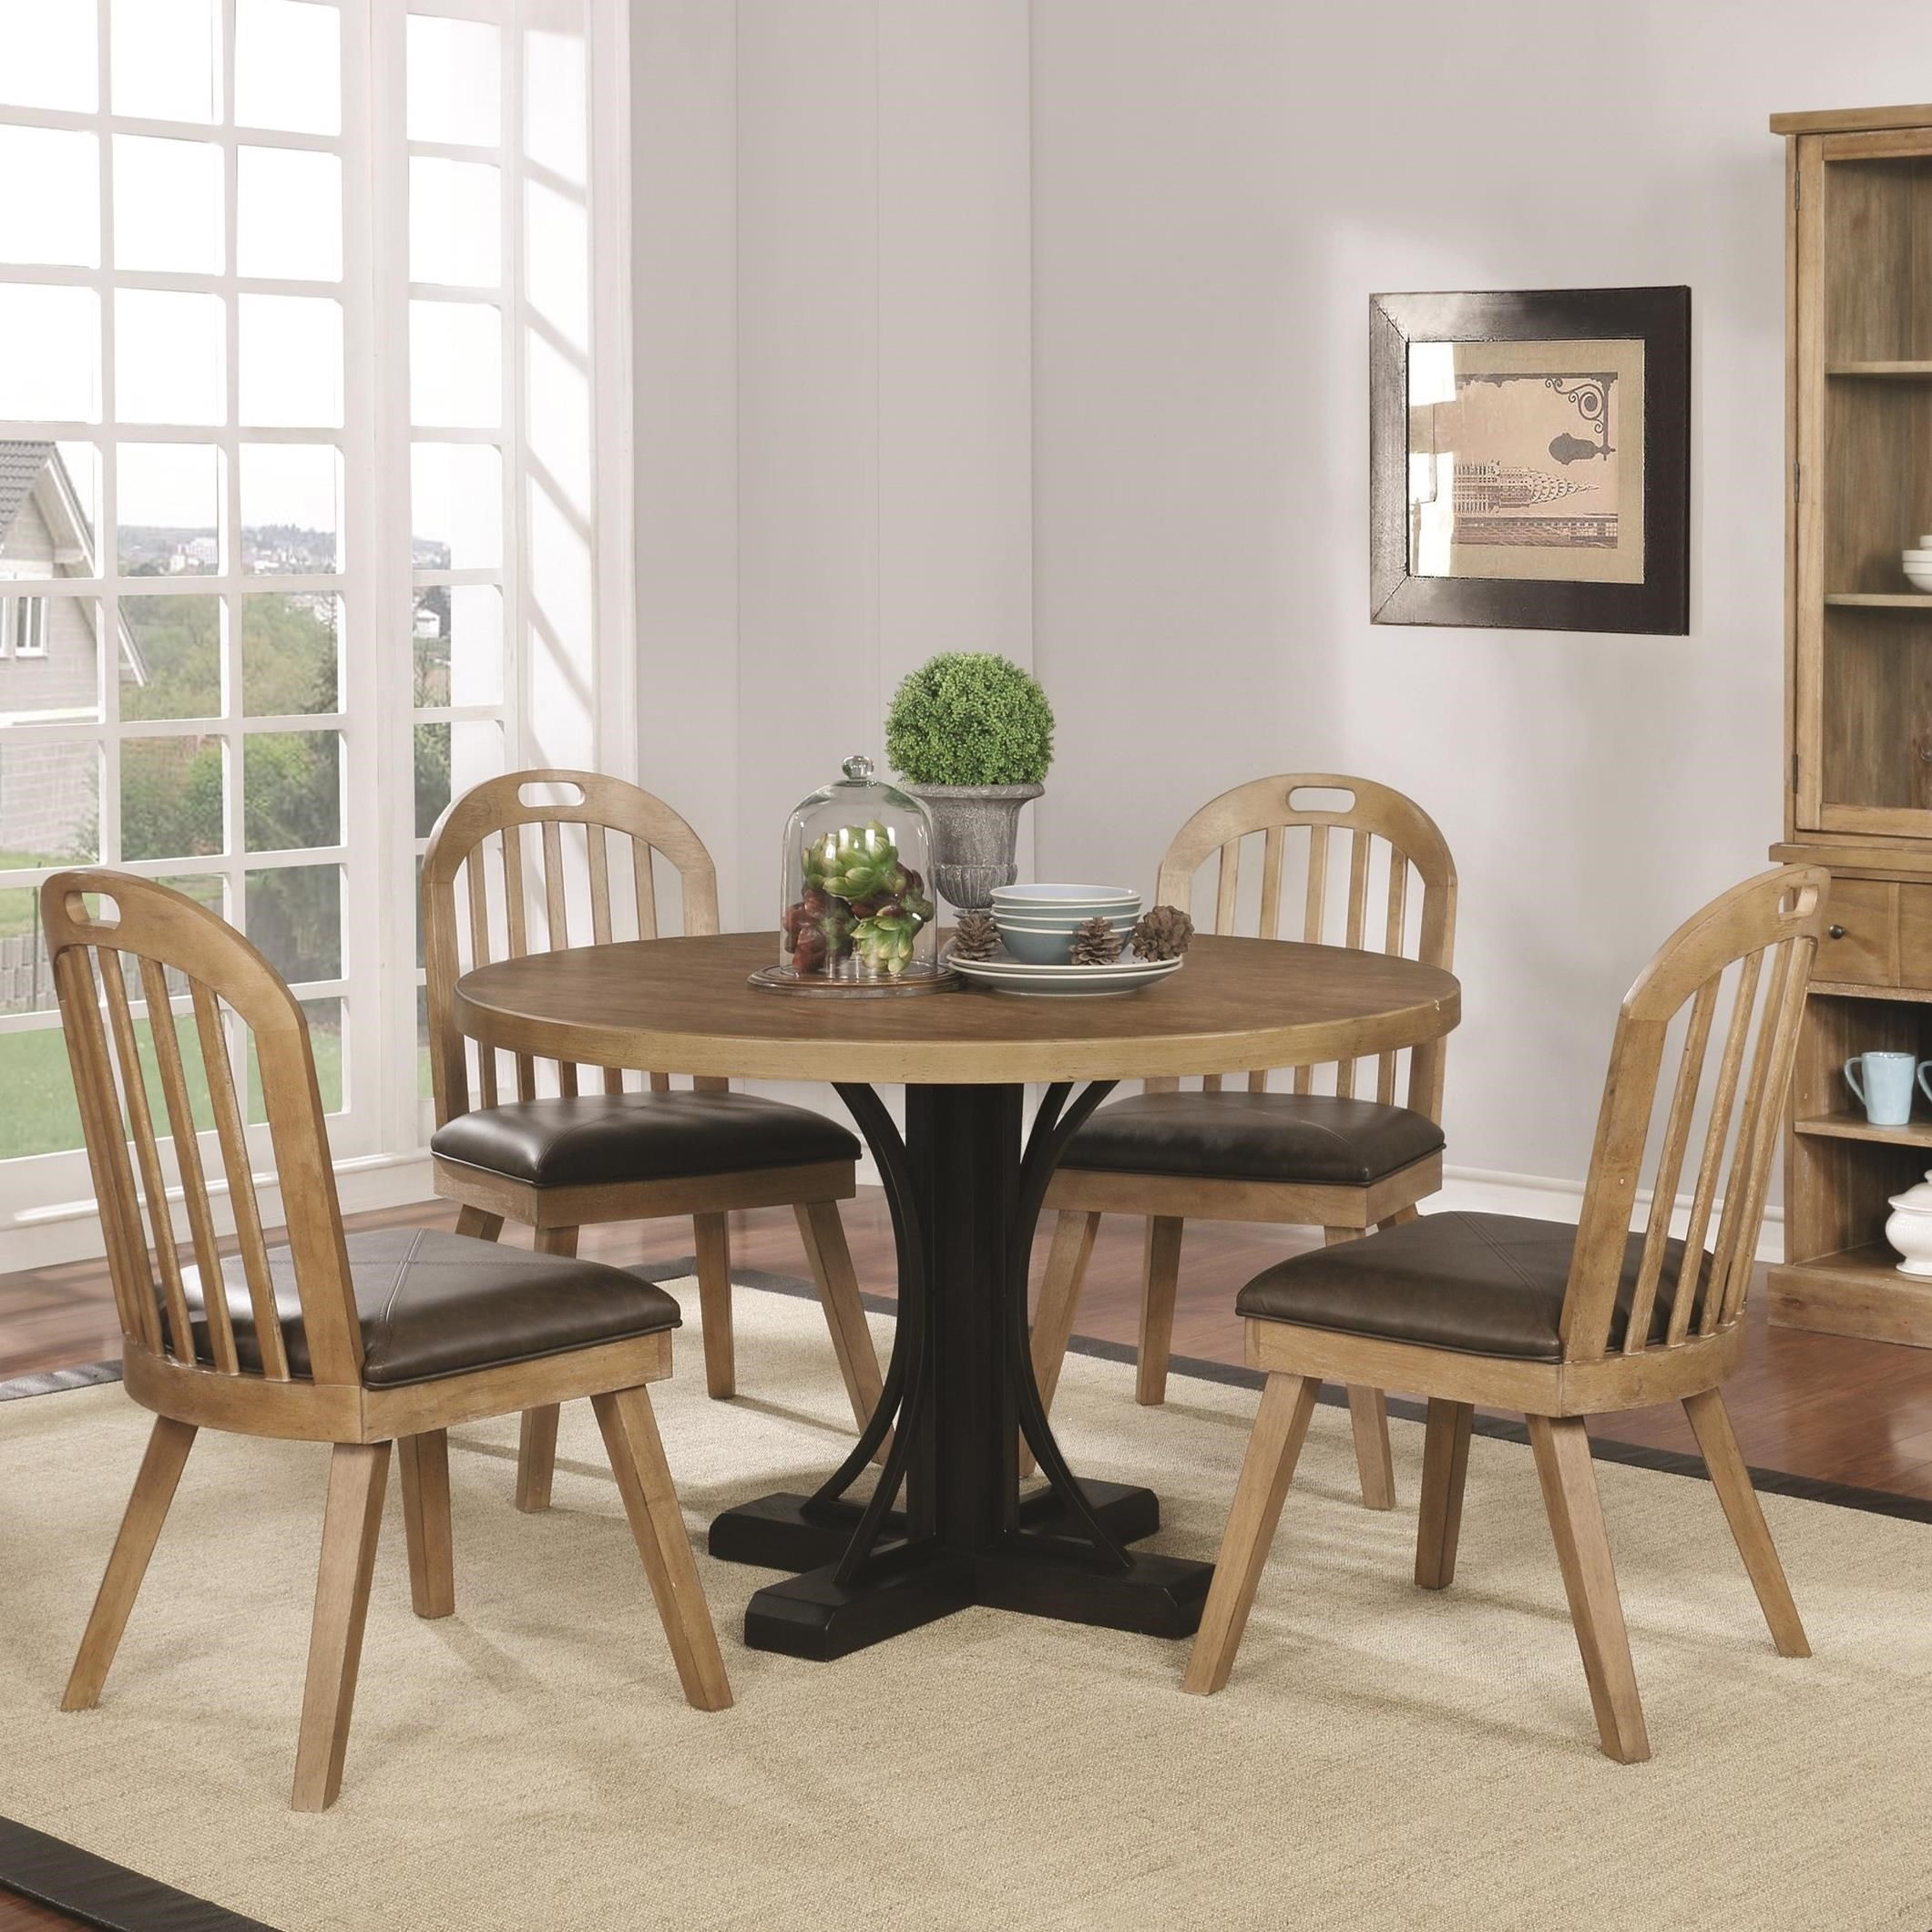 Scott Living Bishop Two Tone Round Table And Chair Set   Coaster Fine  Furniture